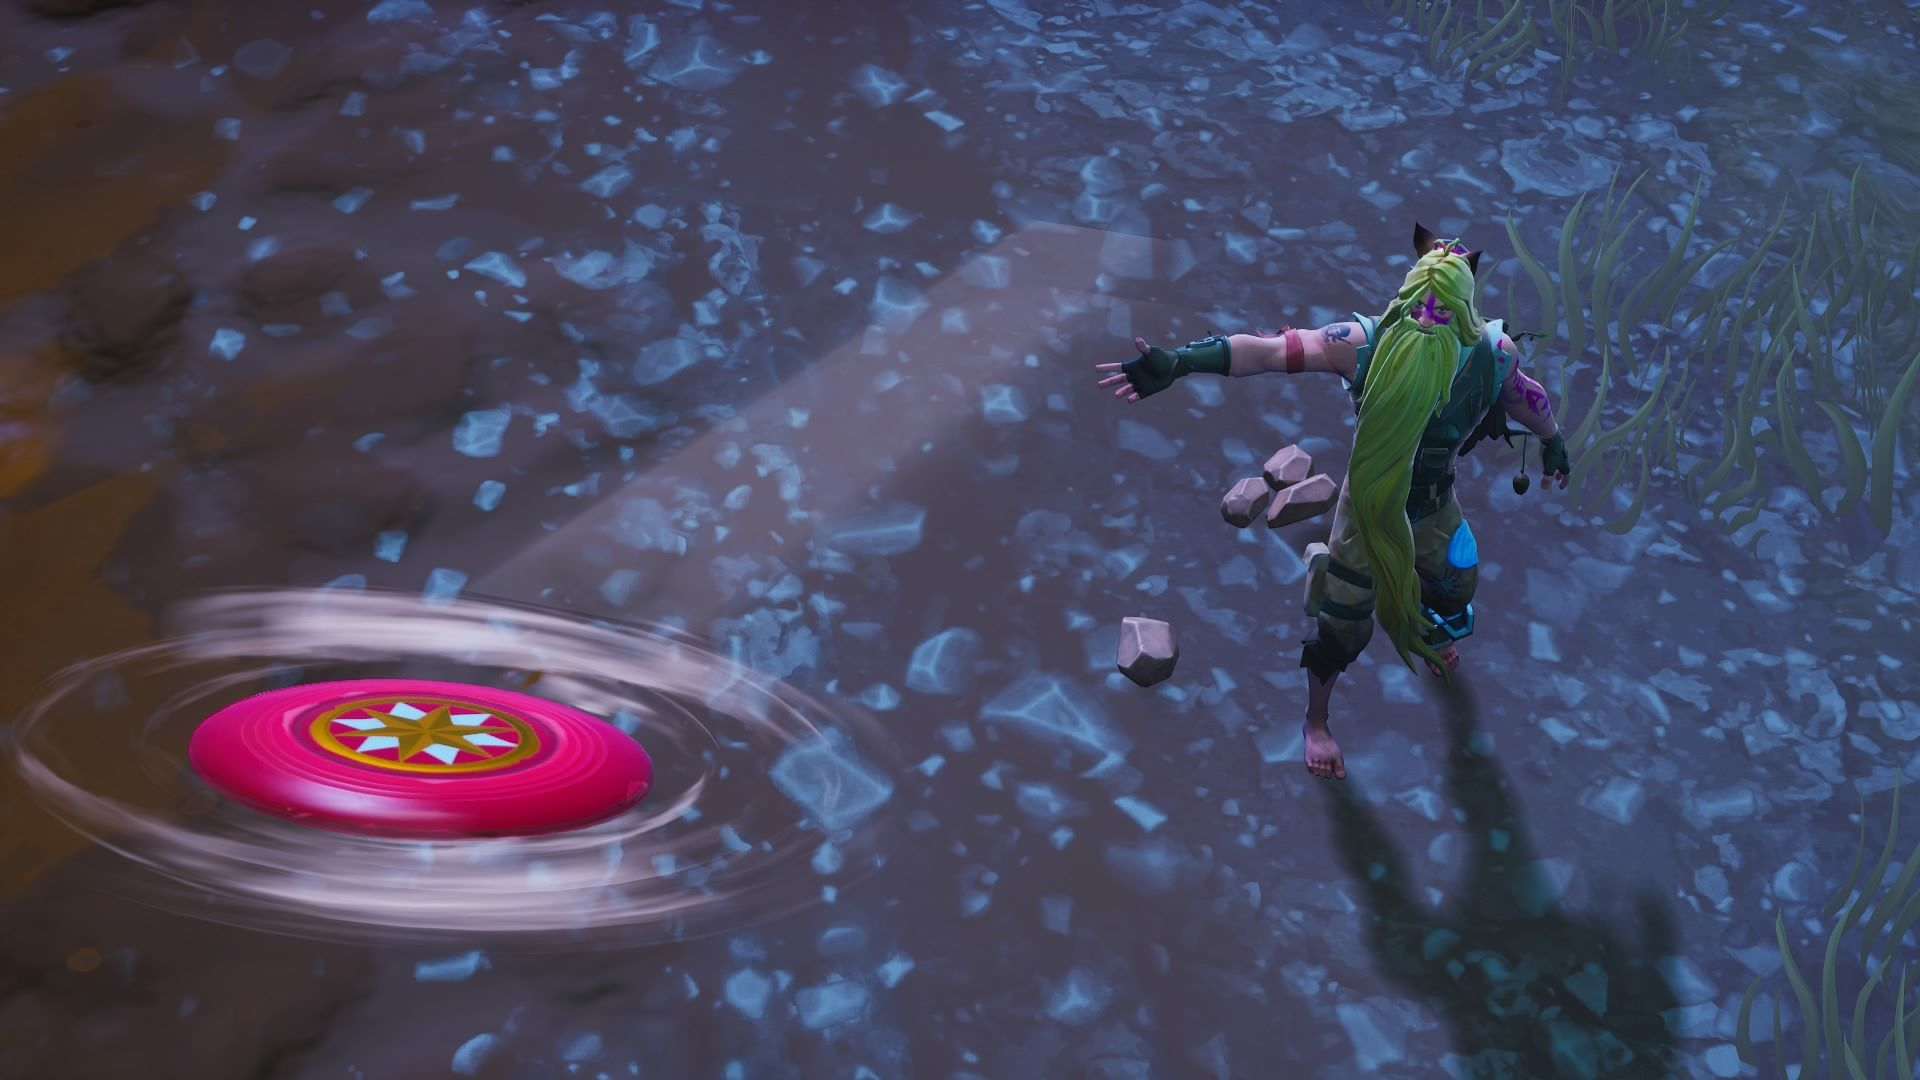 throw the flying disc toy and catch it before it lands